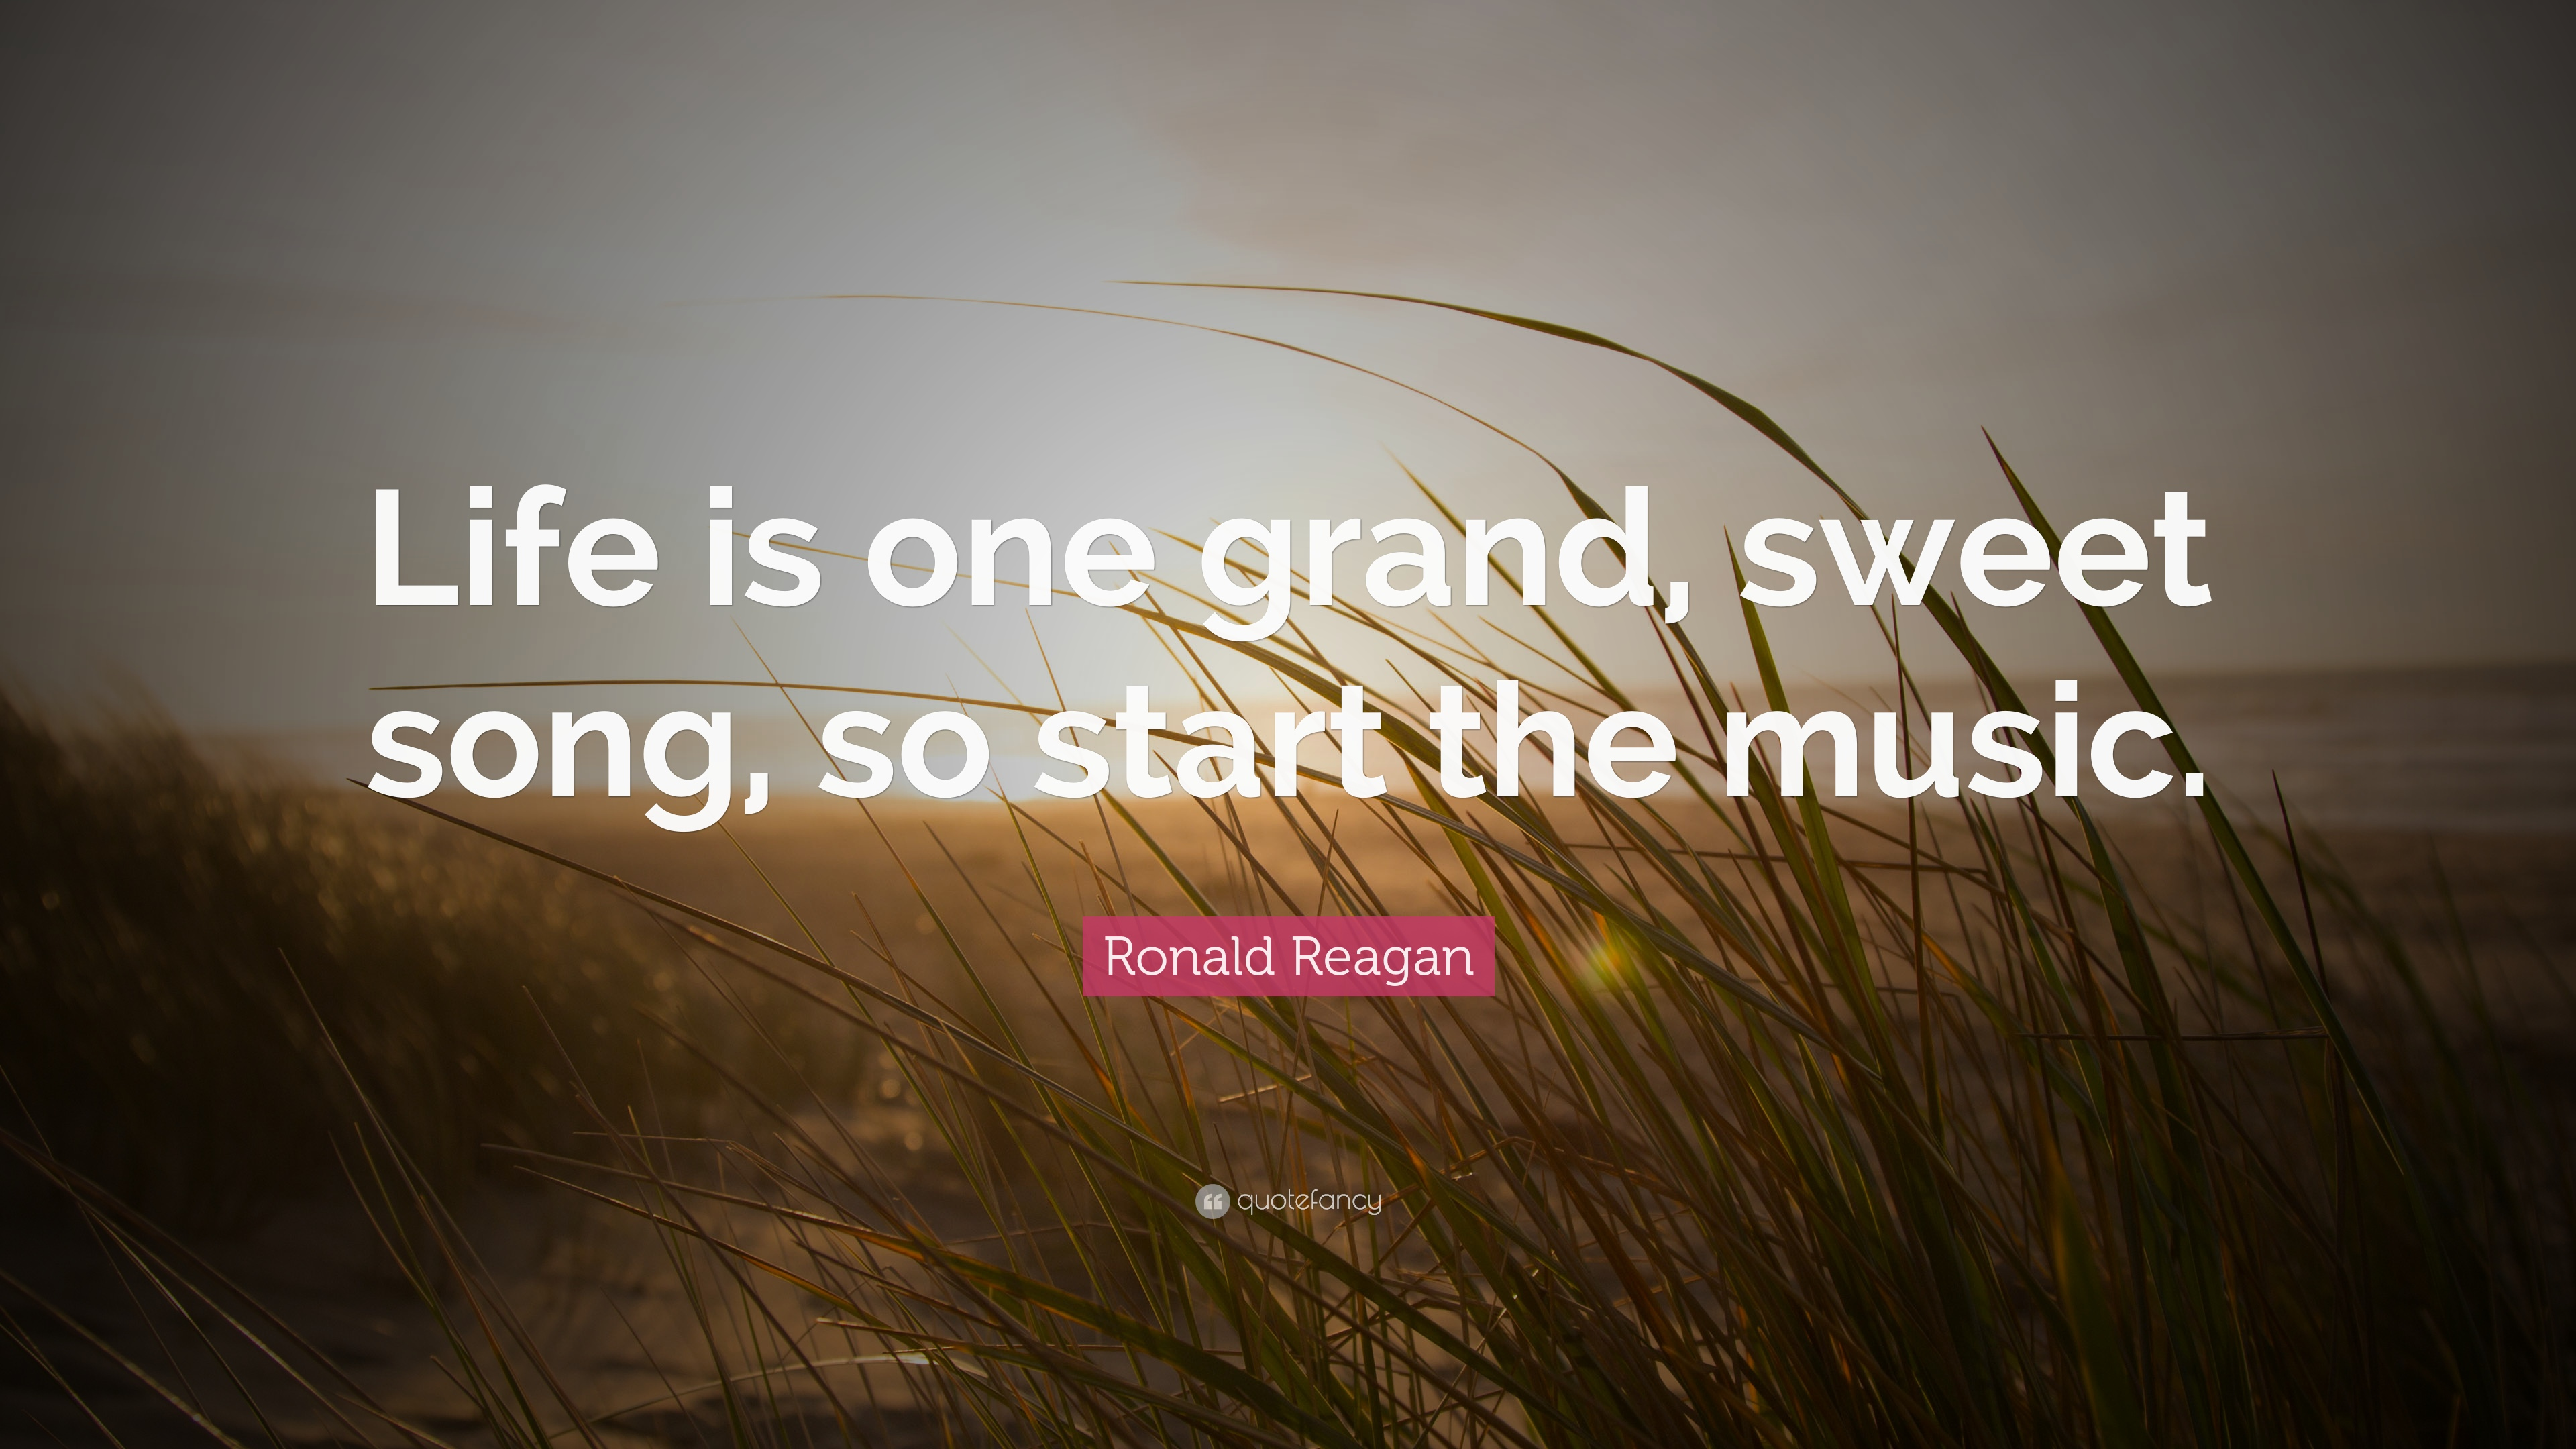 Awesome Ronald Reagan Quote: U201cLife Is One Grand, Sweet Song, So Start The